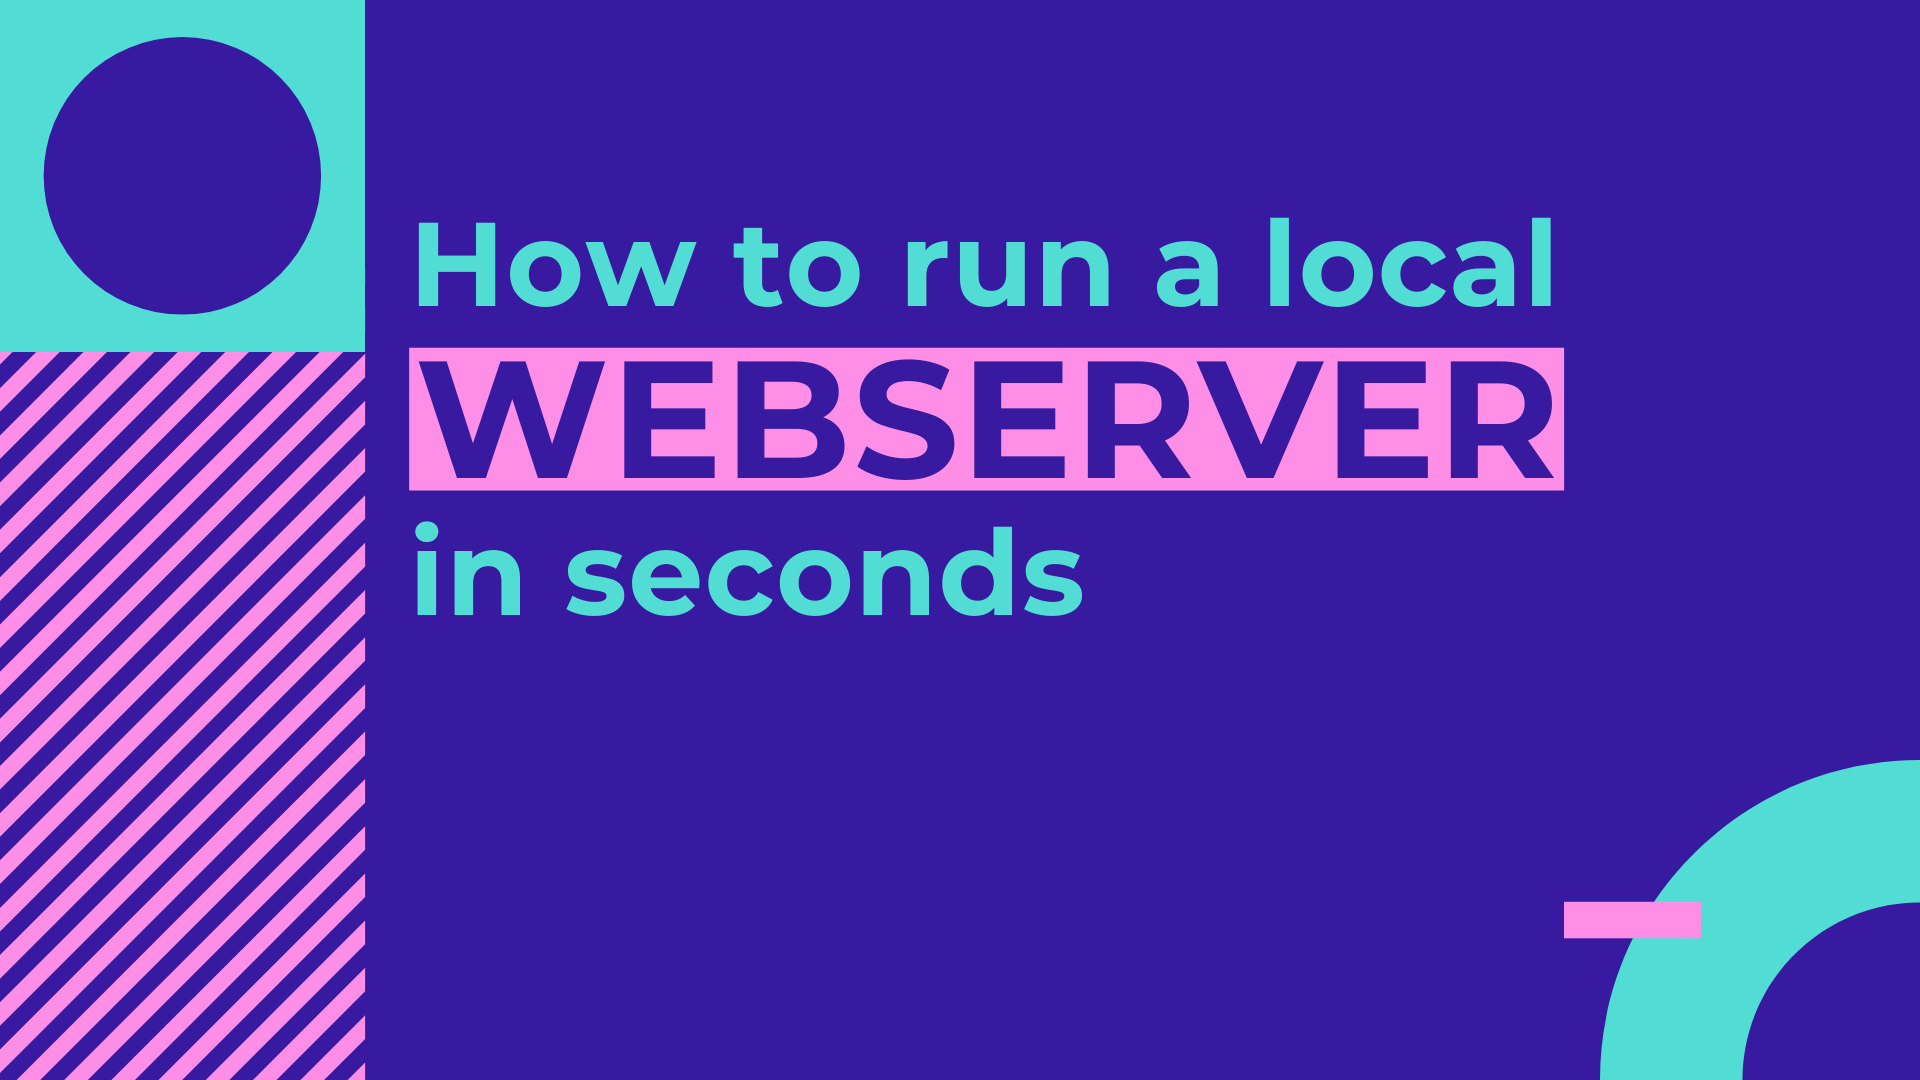 How to run a webserver for development in seconds